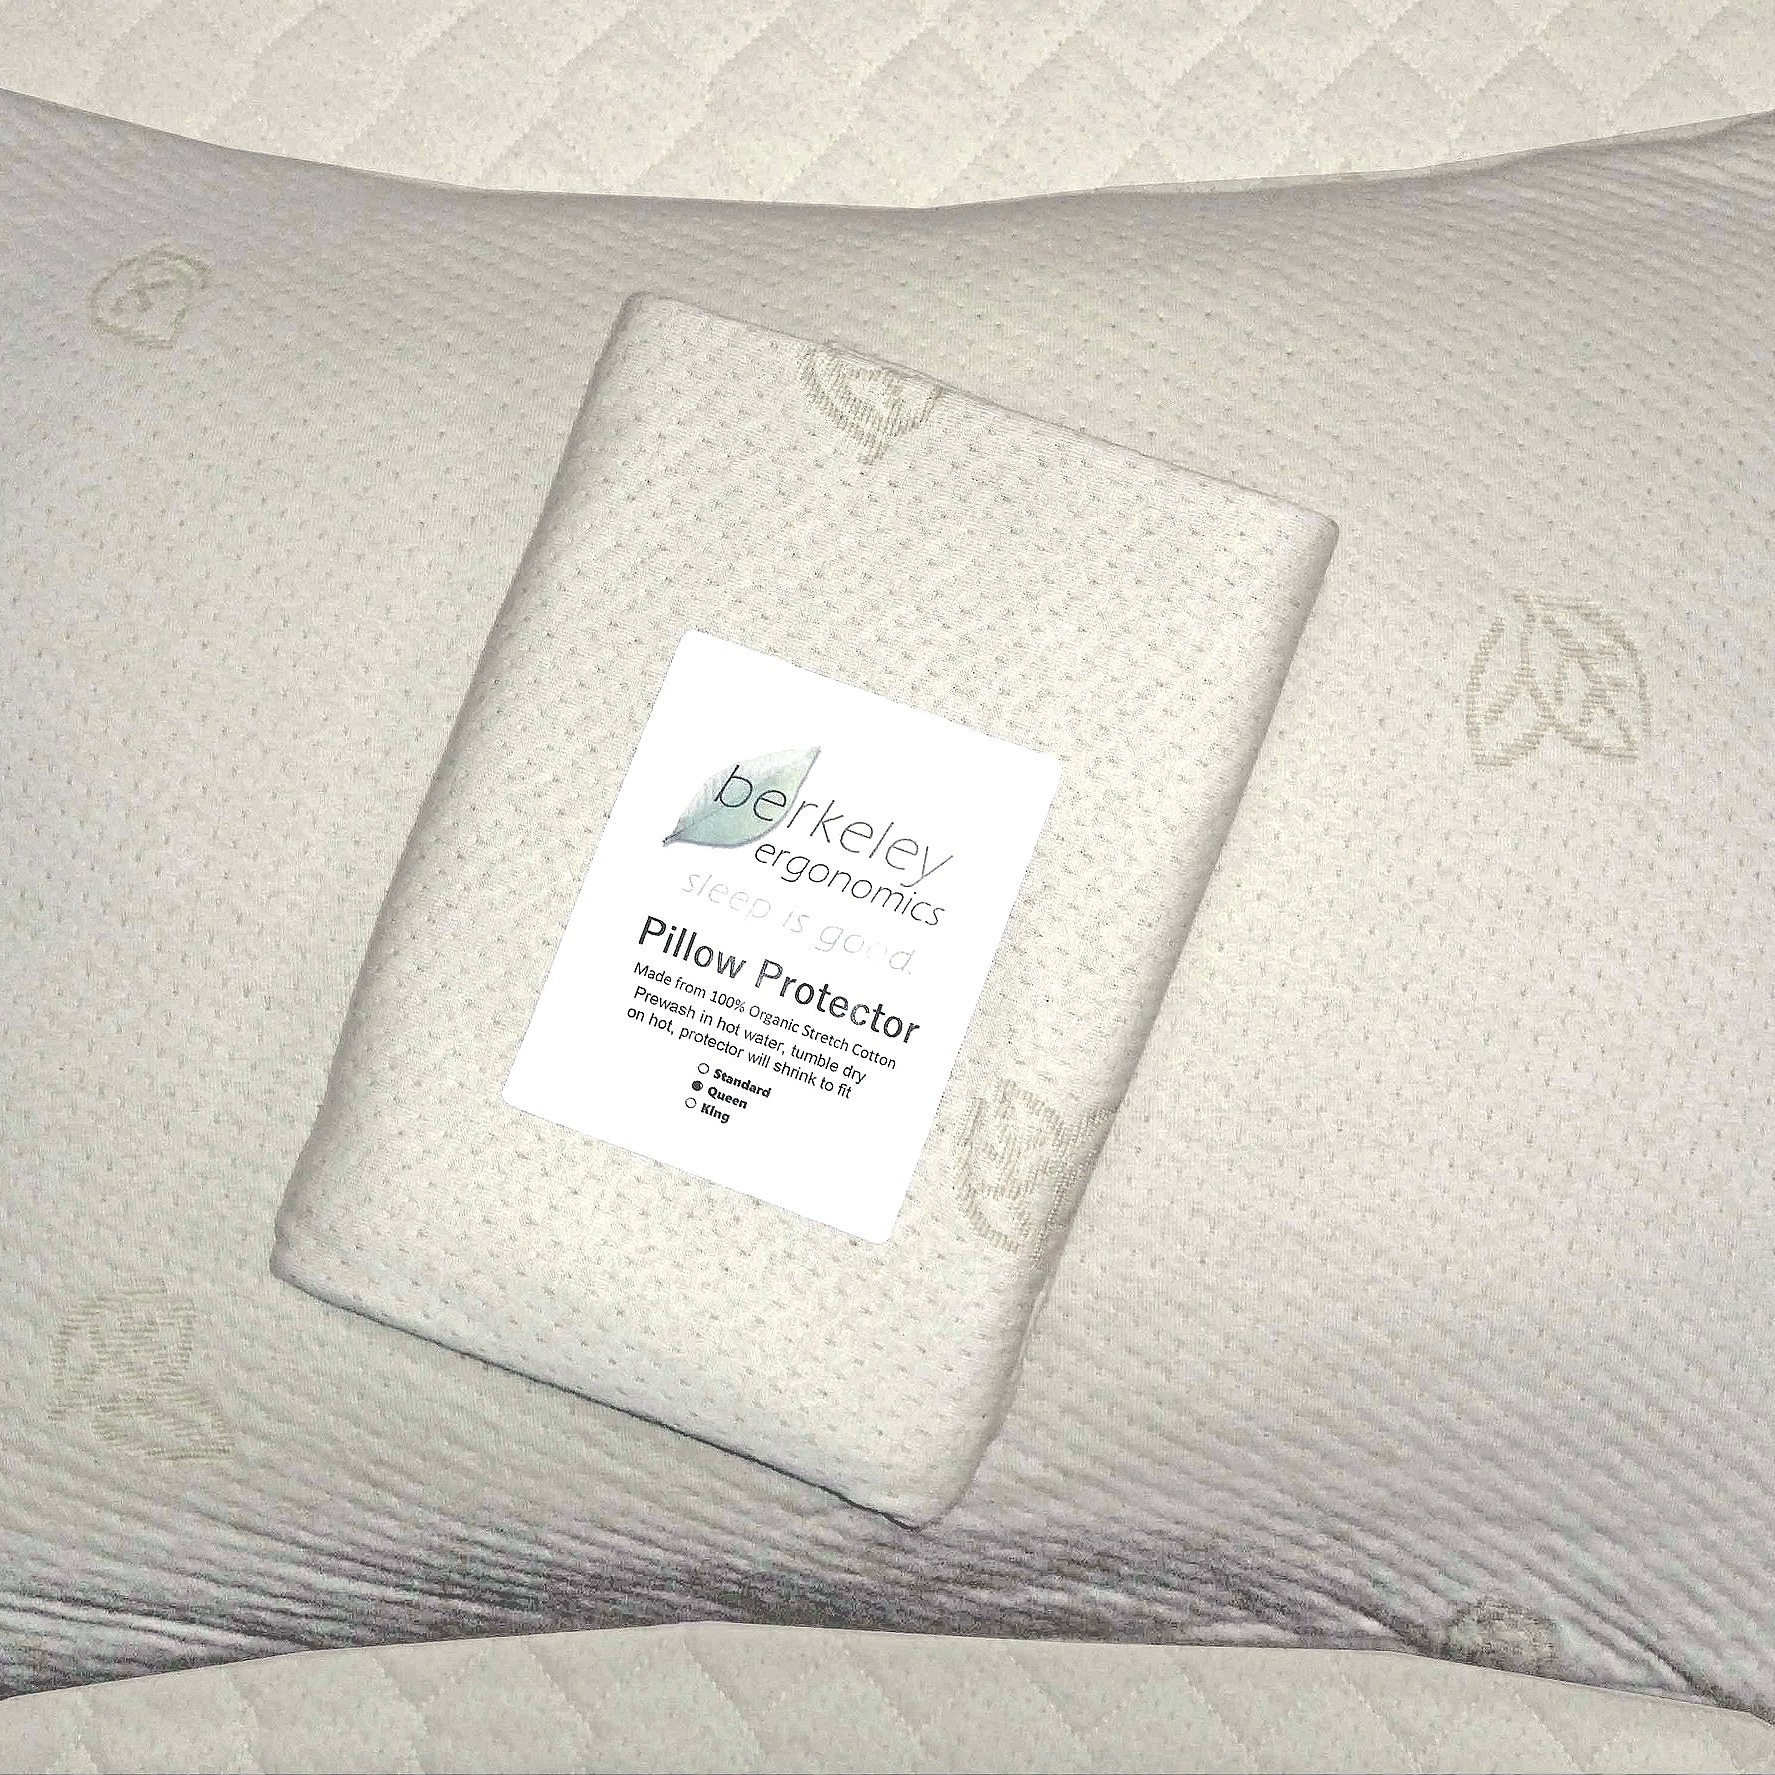 Berkeley Ergonomic pillow protector made from organic cotton -